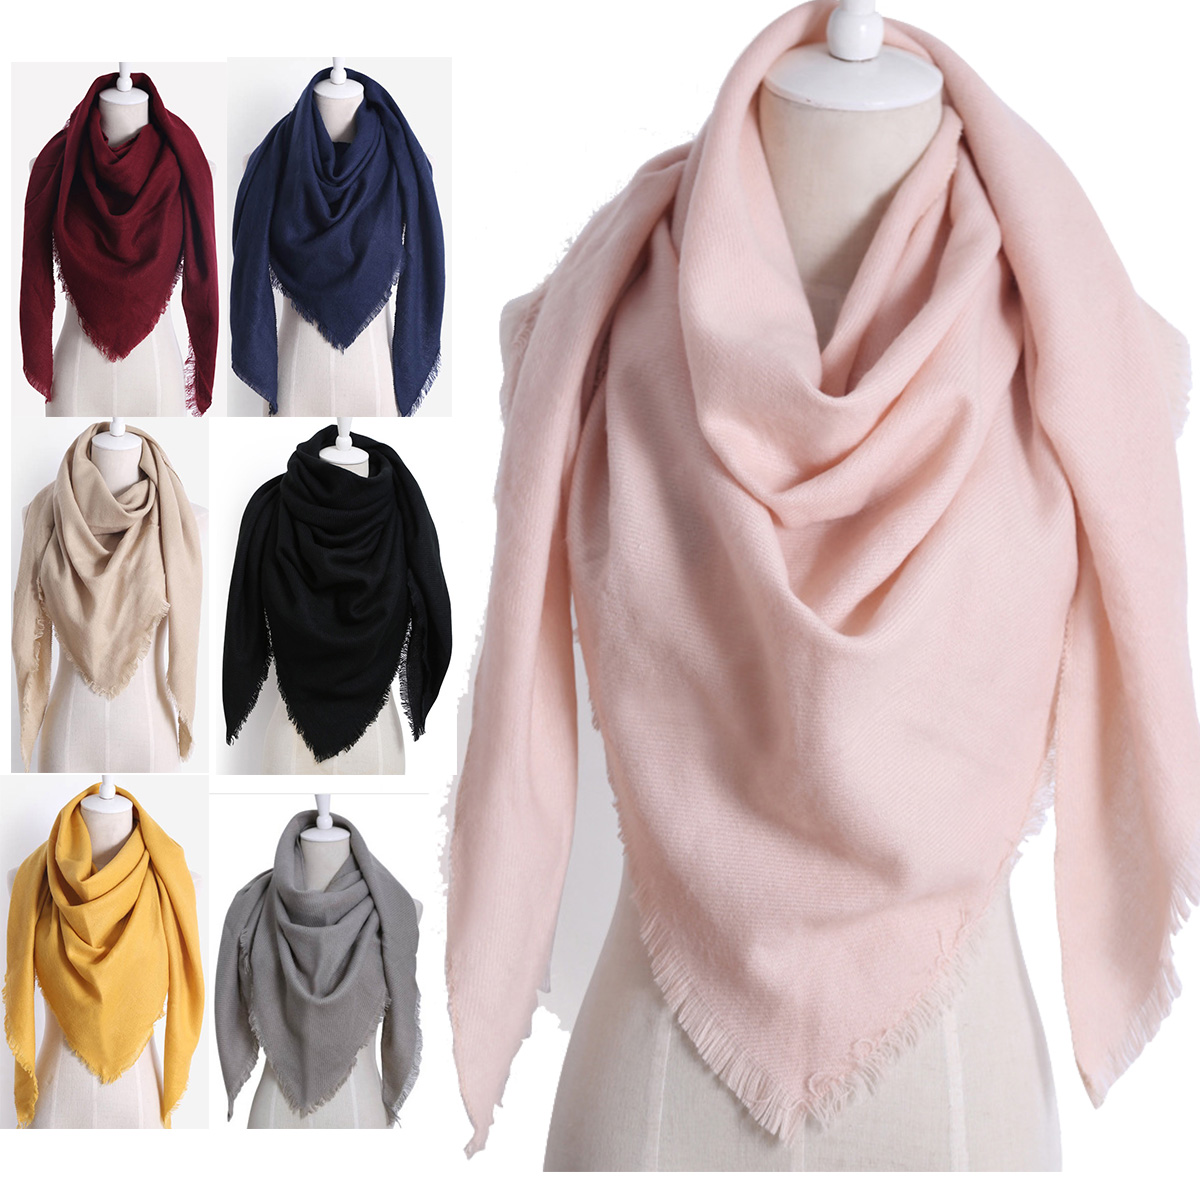 2020 New Fashion Winter Warm Triangle Scarf For Women Pashmina Shawl Cashmere Plaid Scarves Blanket  Shawls scarf female stole